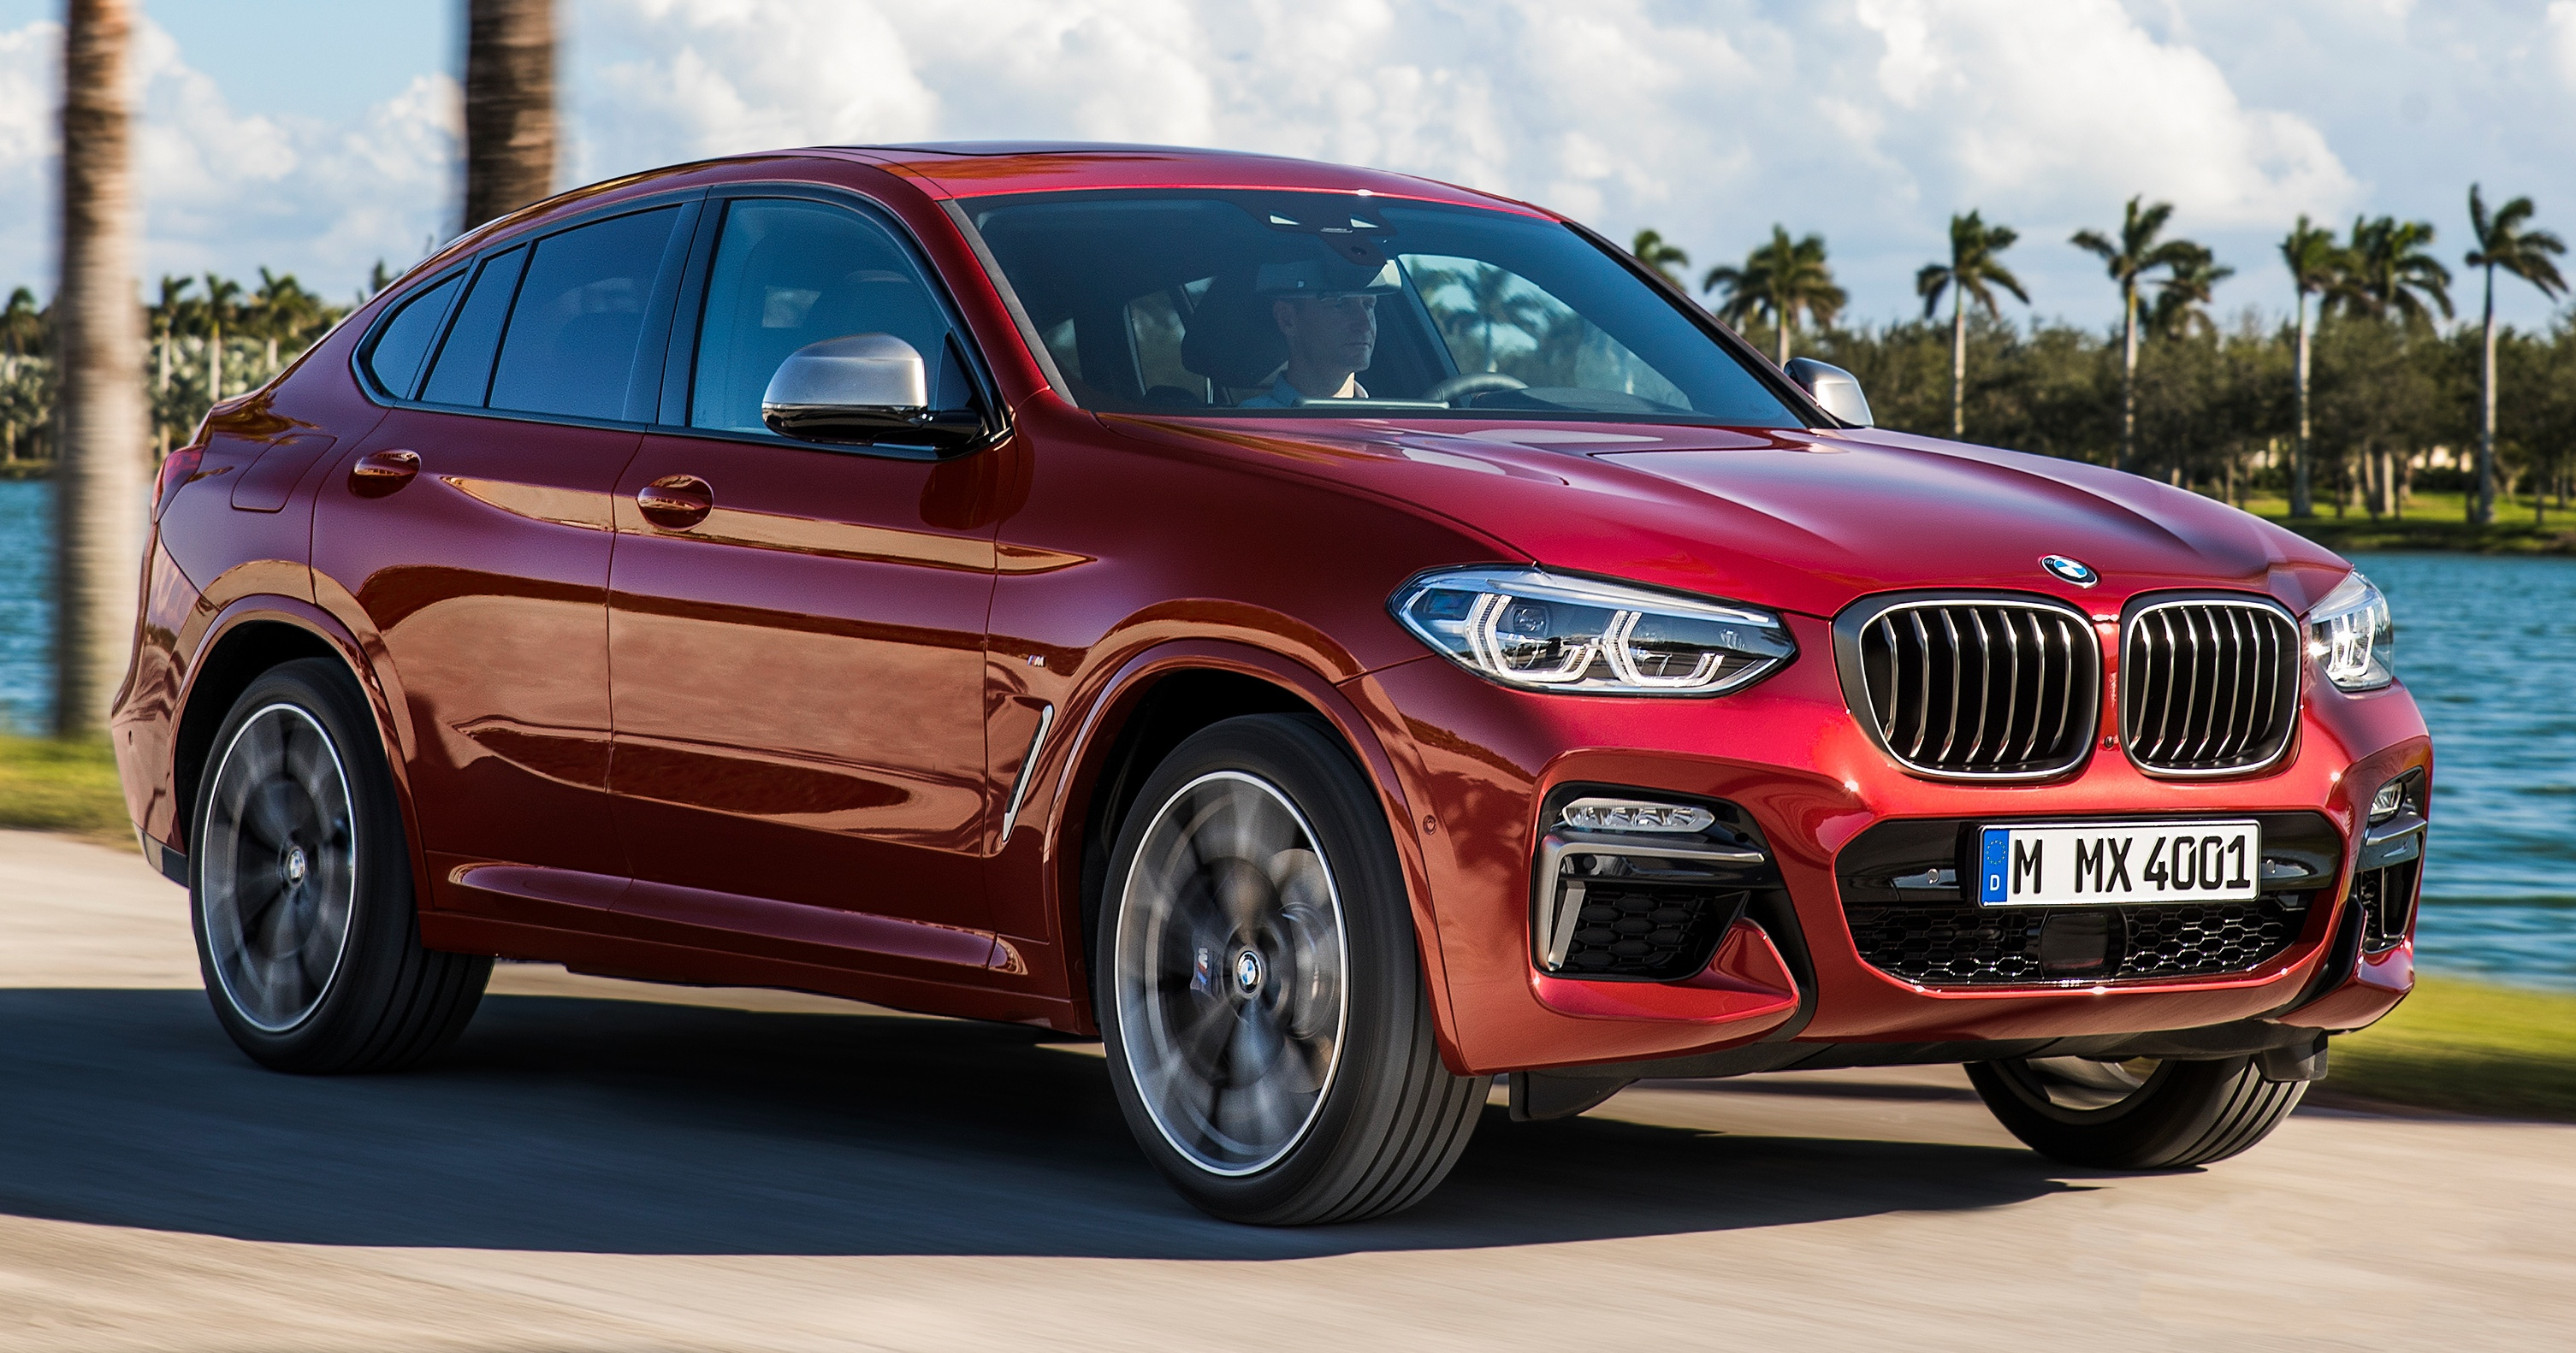 G02 Bmw X4 Unveiled With M40i And M40d Variants Paul Tan